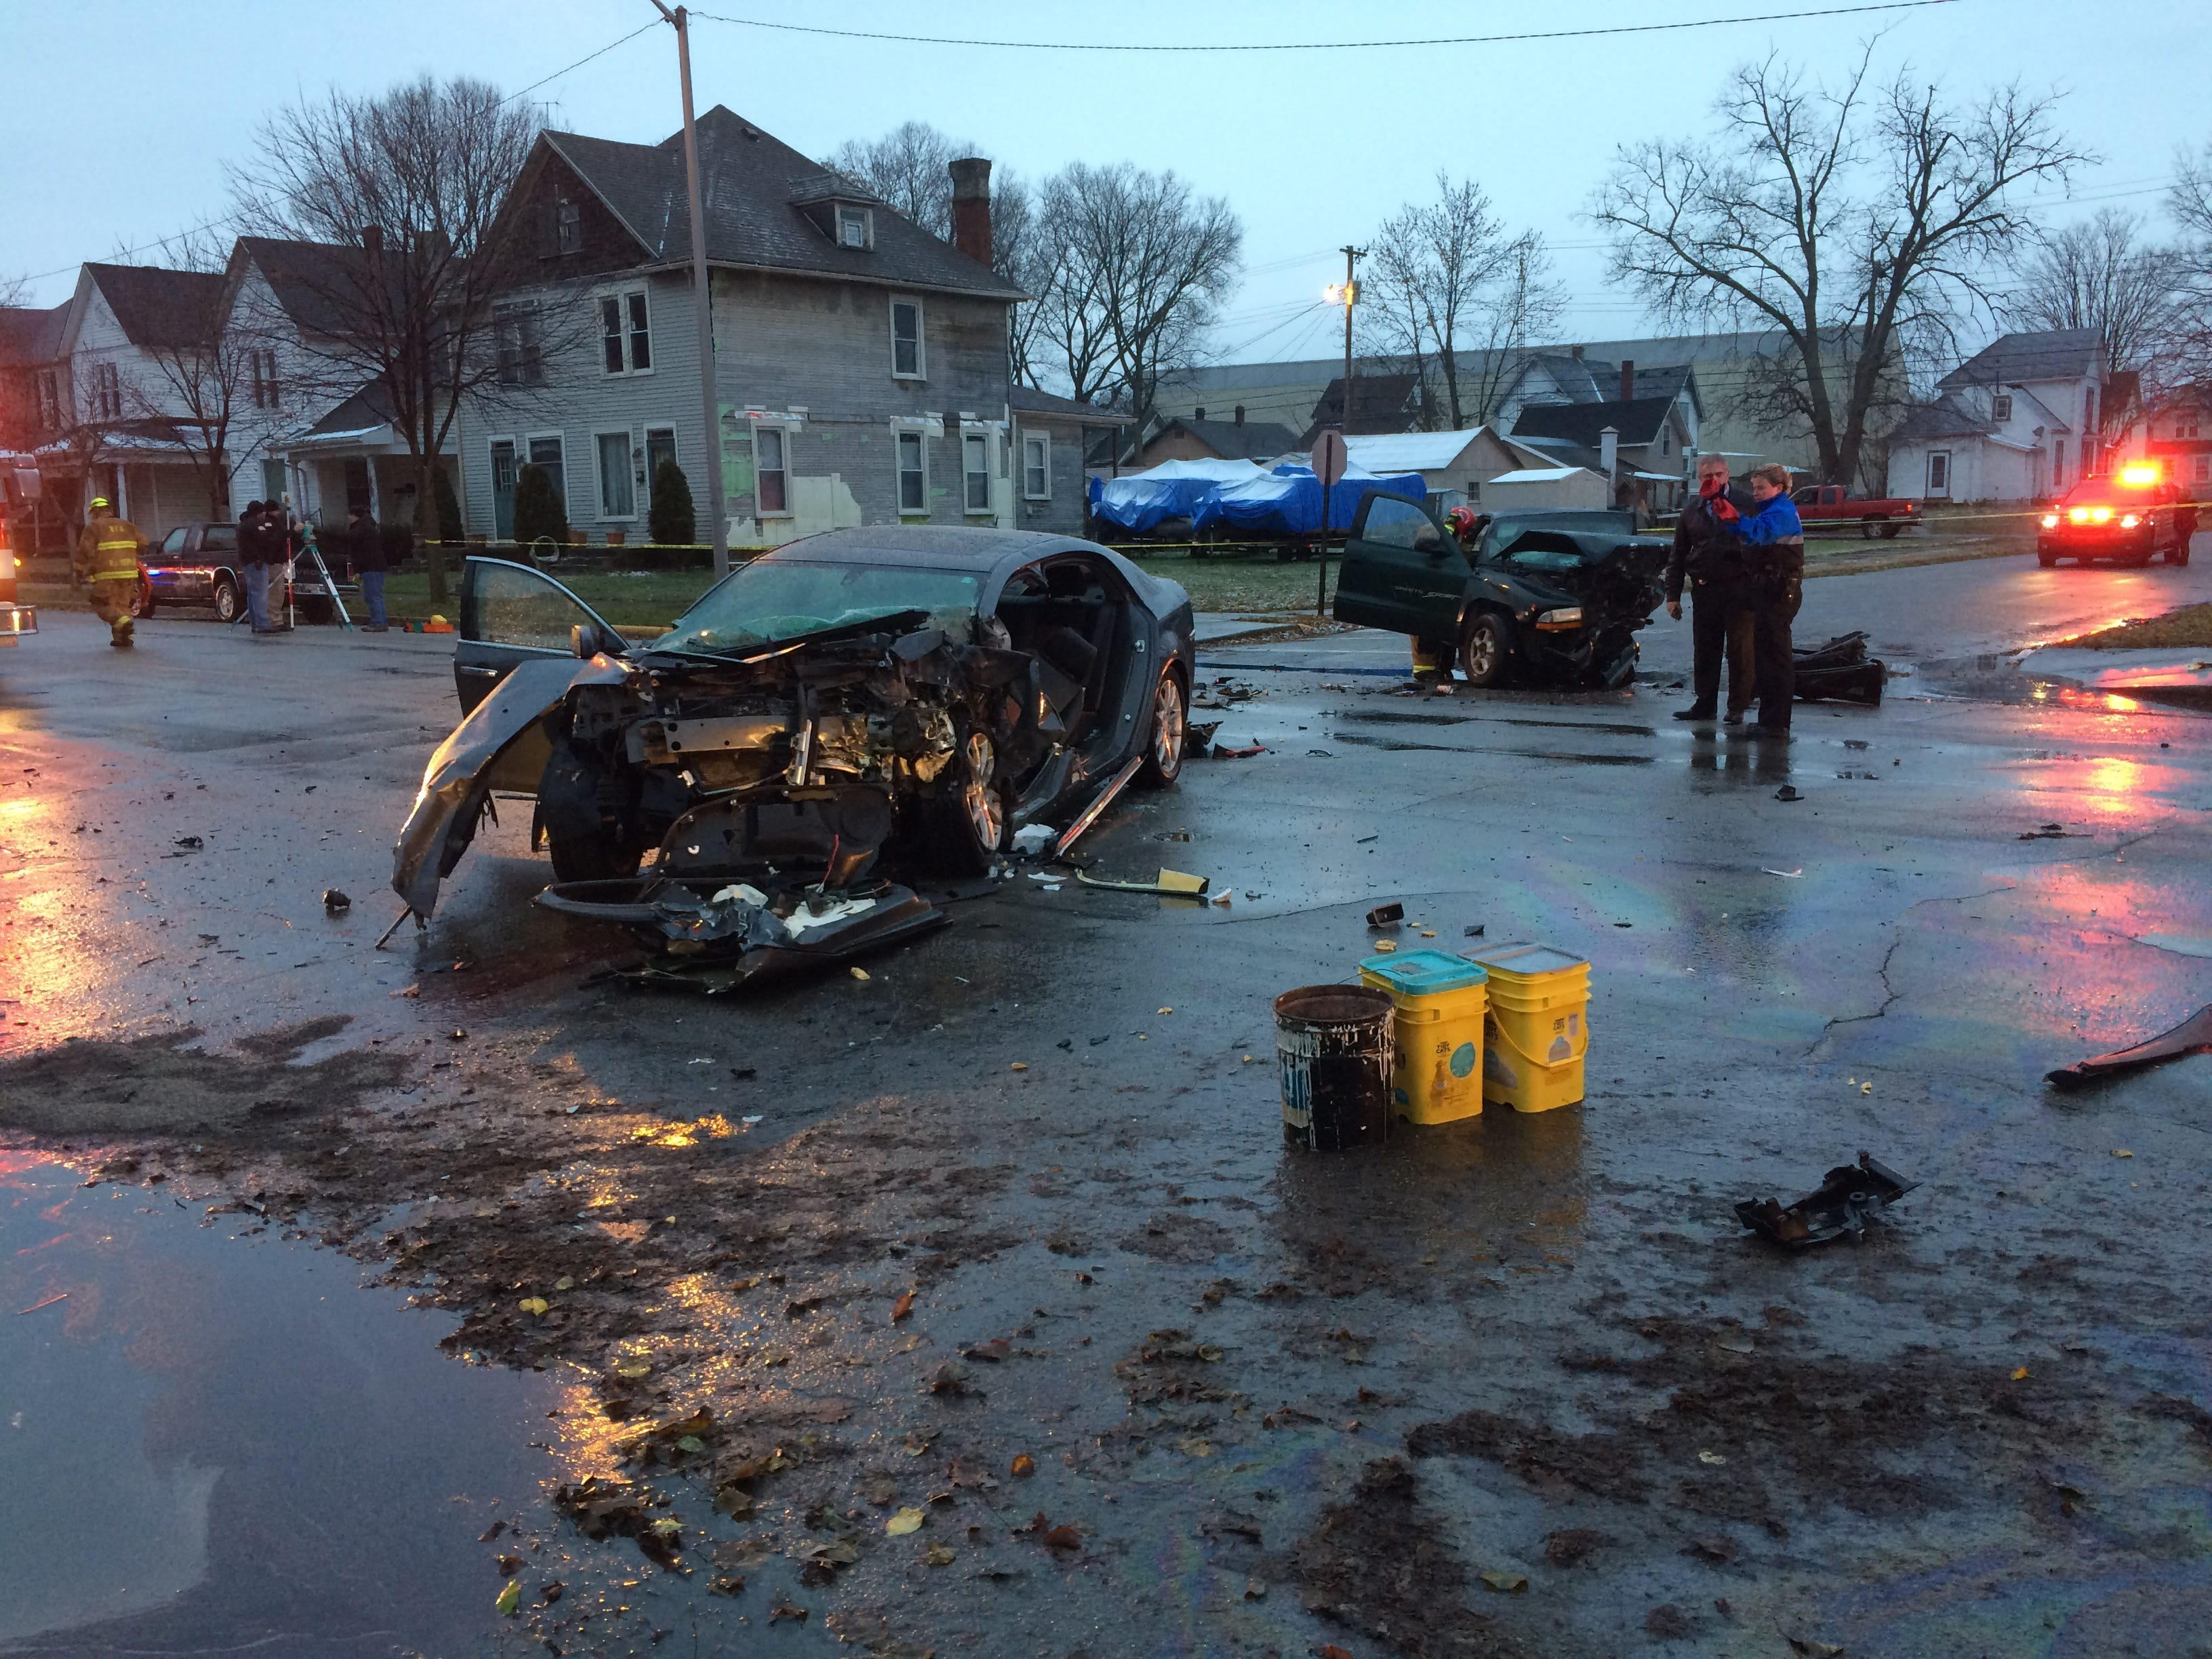 A Chevrolet Malibu and Dodge Dakota pickup truck crashed head-on Thursday afternoon on Richmond Avenue.